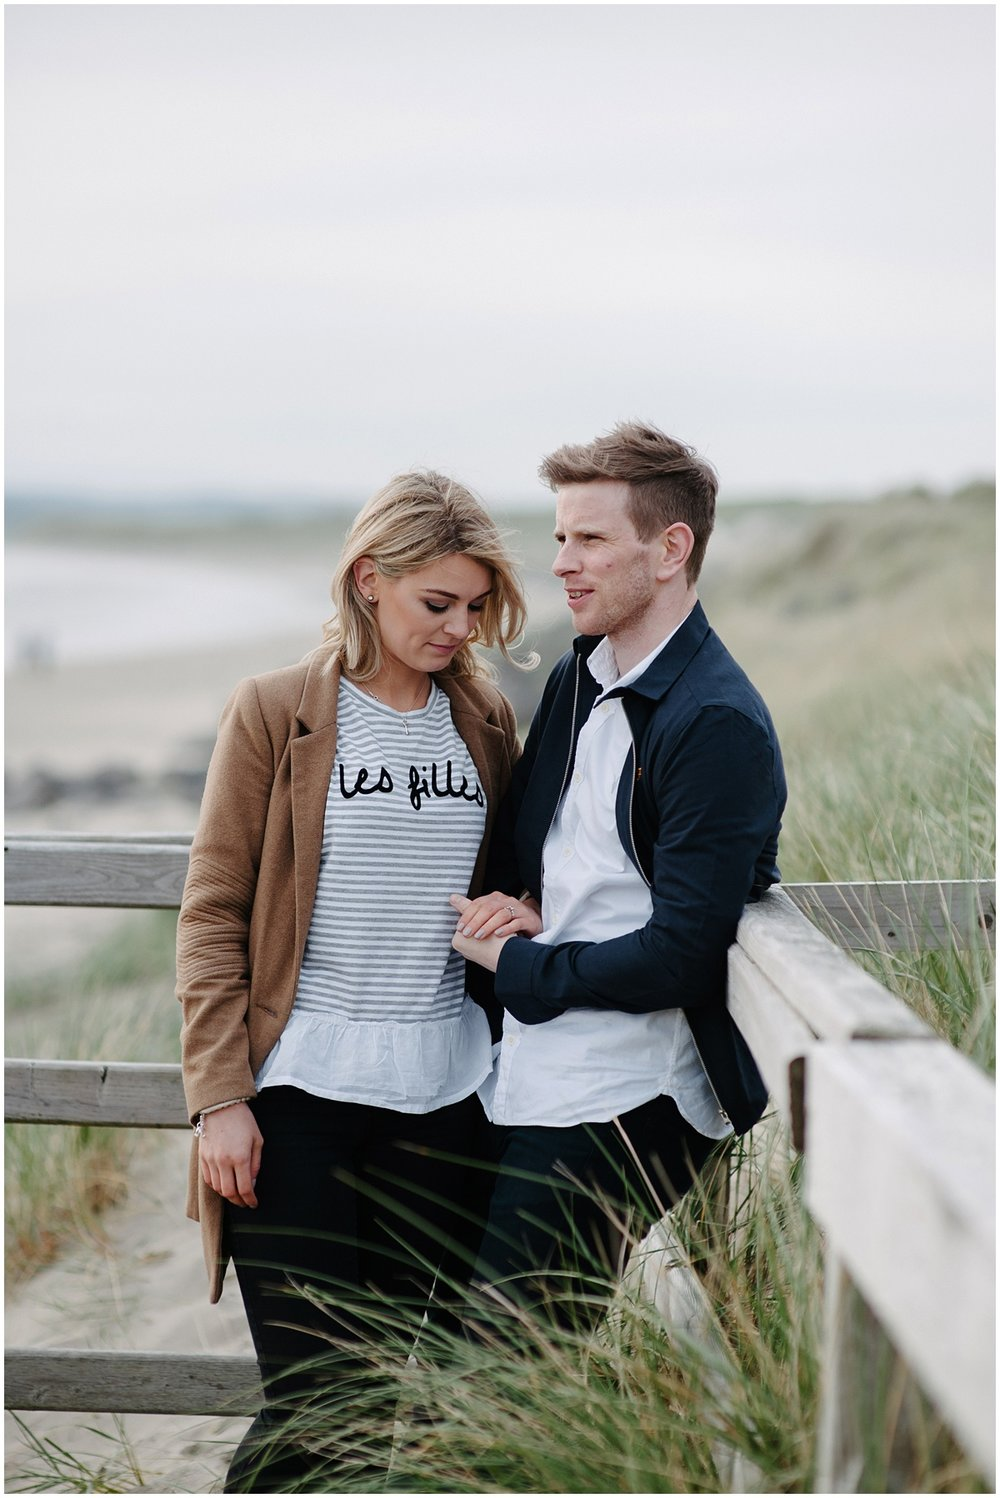 jade_donal_pre_wedding_rossnowlagh_jude_browne_photography_0017.jpg